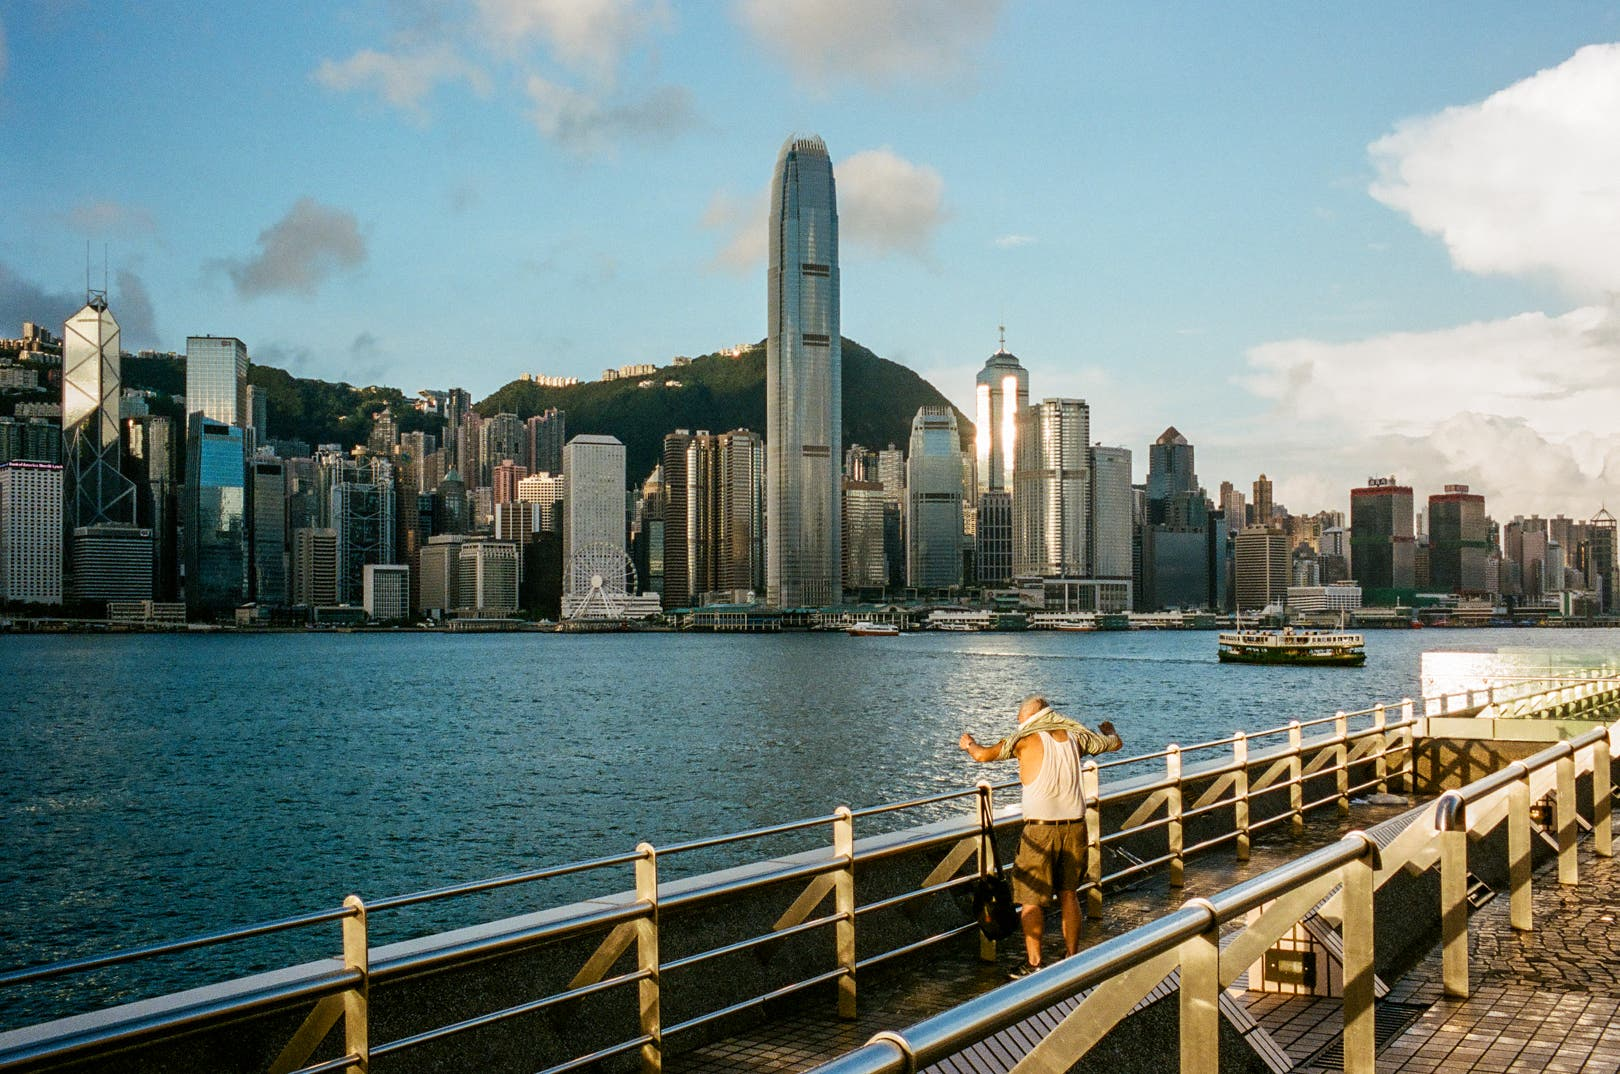 Wong Wei-Him Shares His Connection with Hong Kong's Iconic Harbor